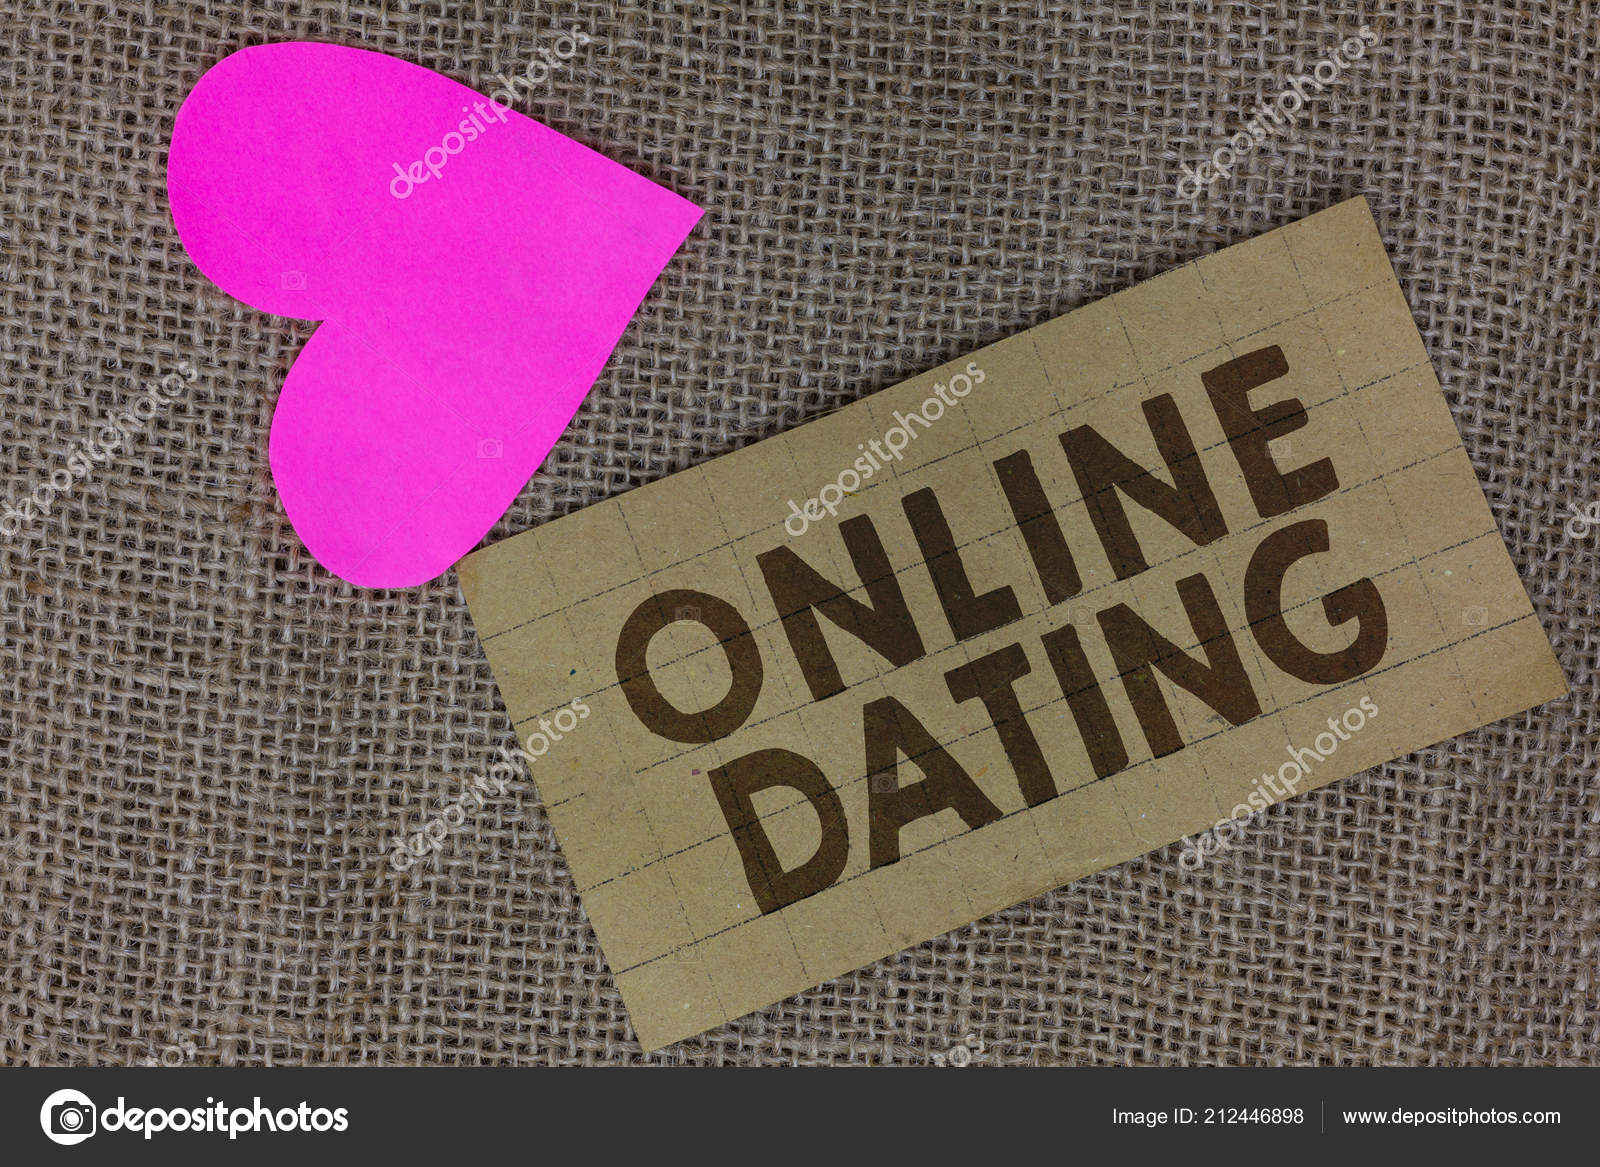 How to join videos together online dating